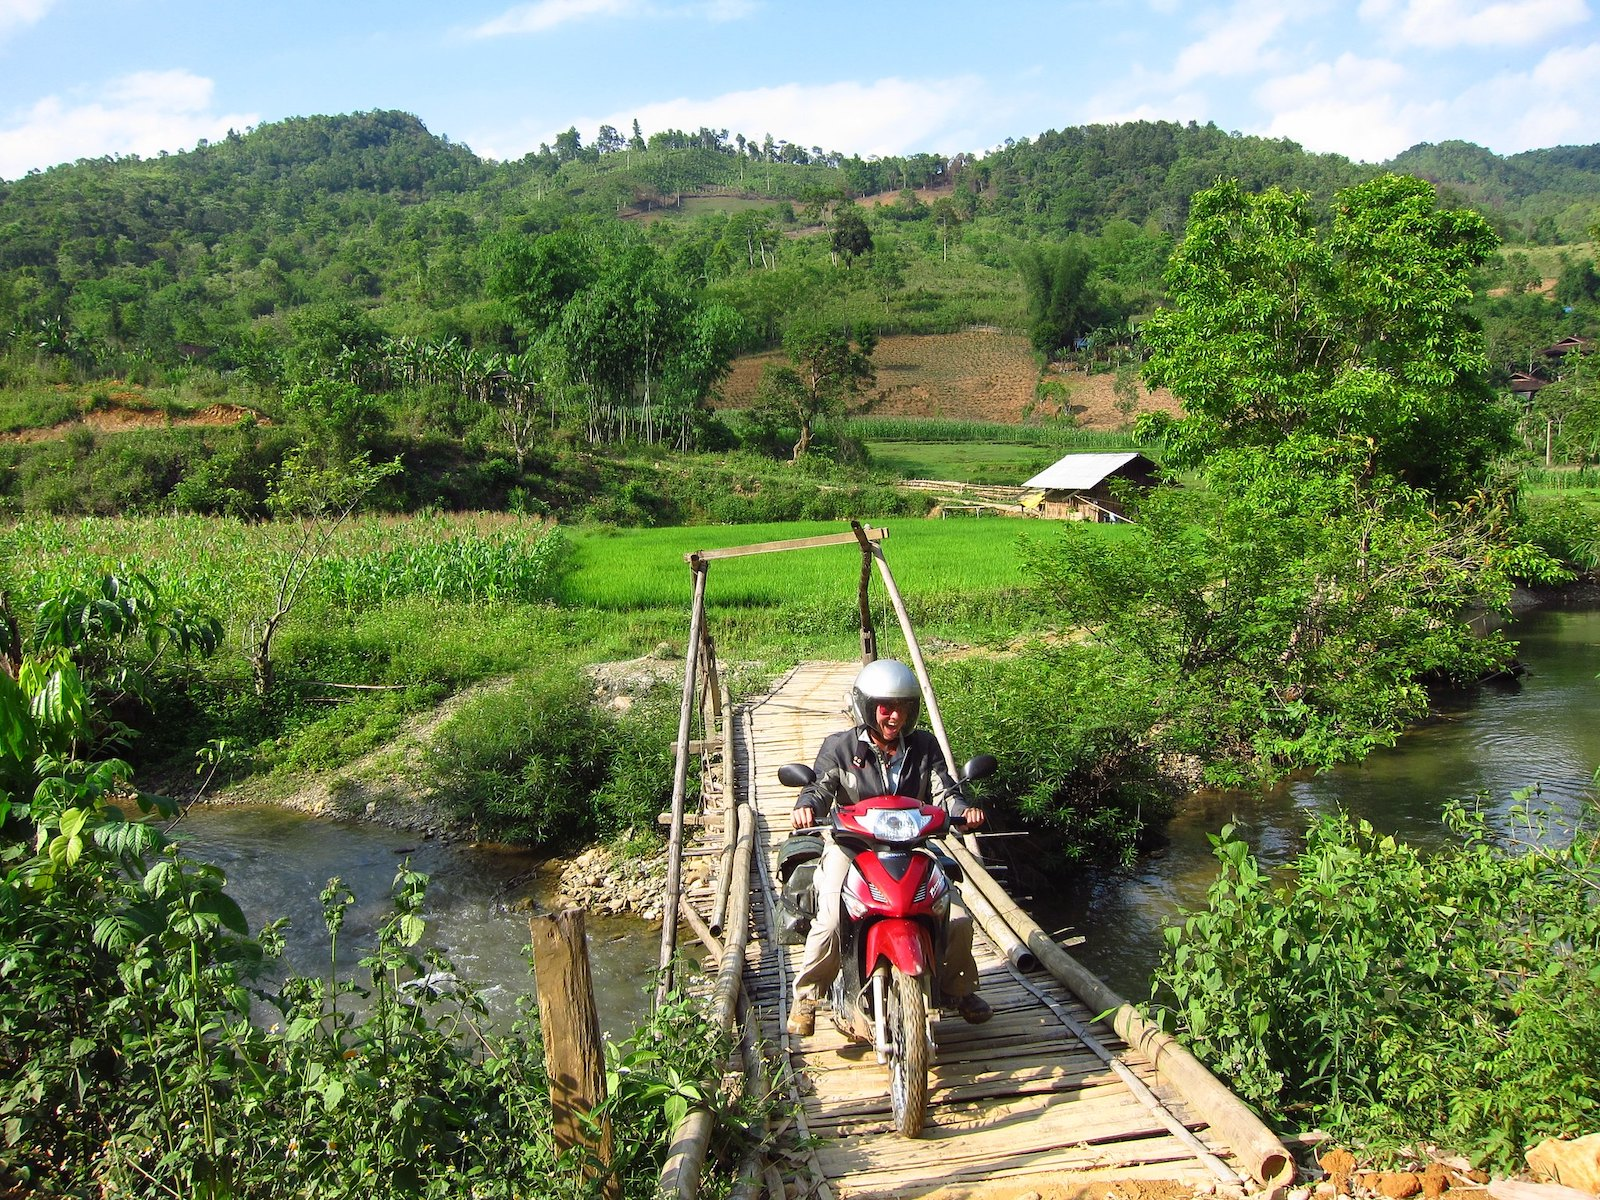 Image of a person on a motorbike crossing a bamboo bridge on the route from Meo Vac to Ba Be National Park in Vietnam